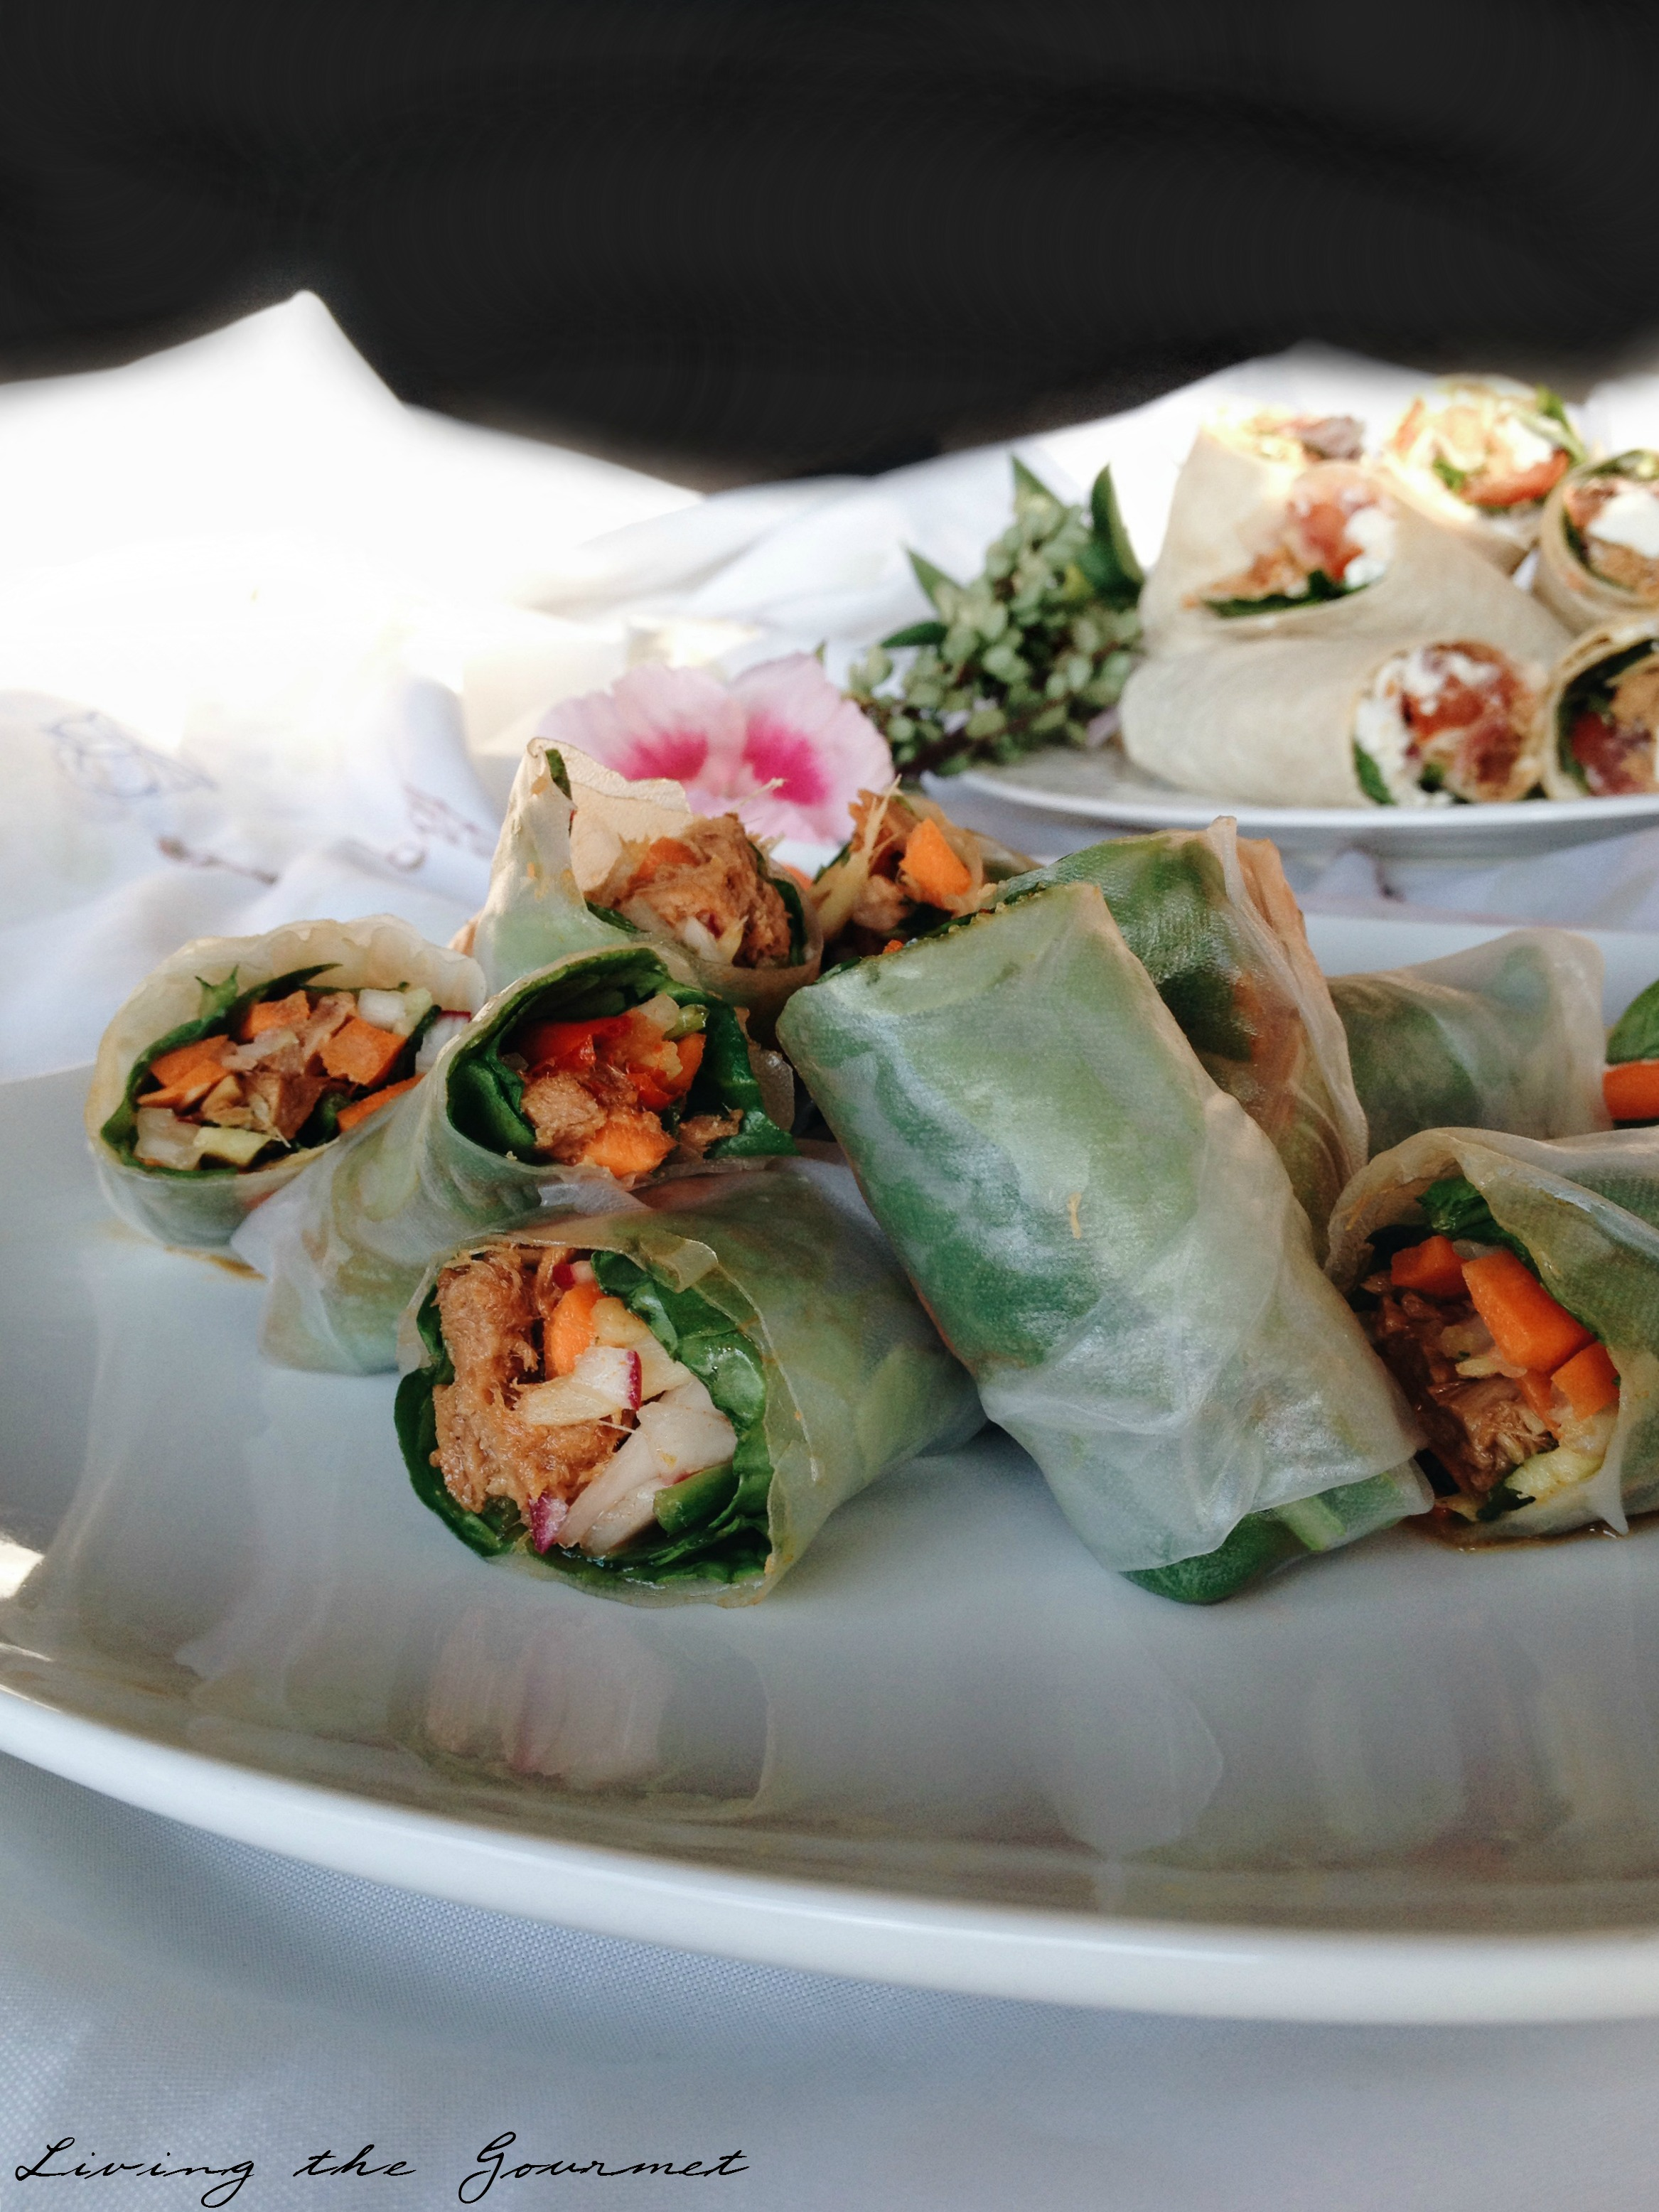 Living the Gourmet: Bumble Bee® Tuna Wraps Medley #TunaStrong #CG